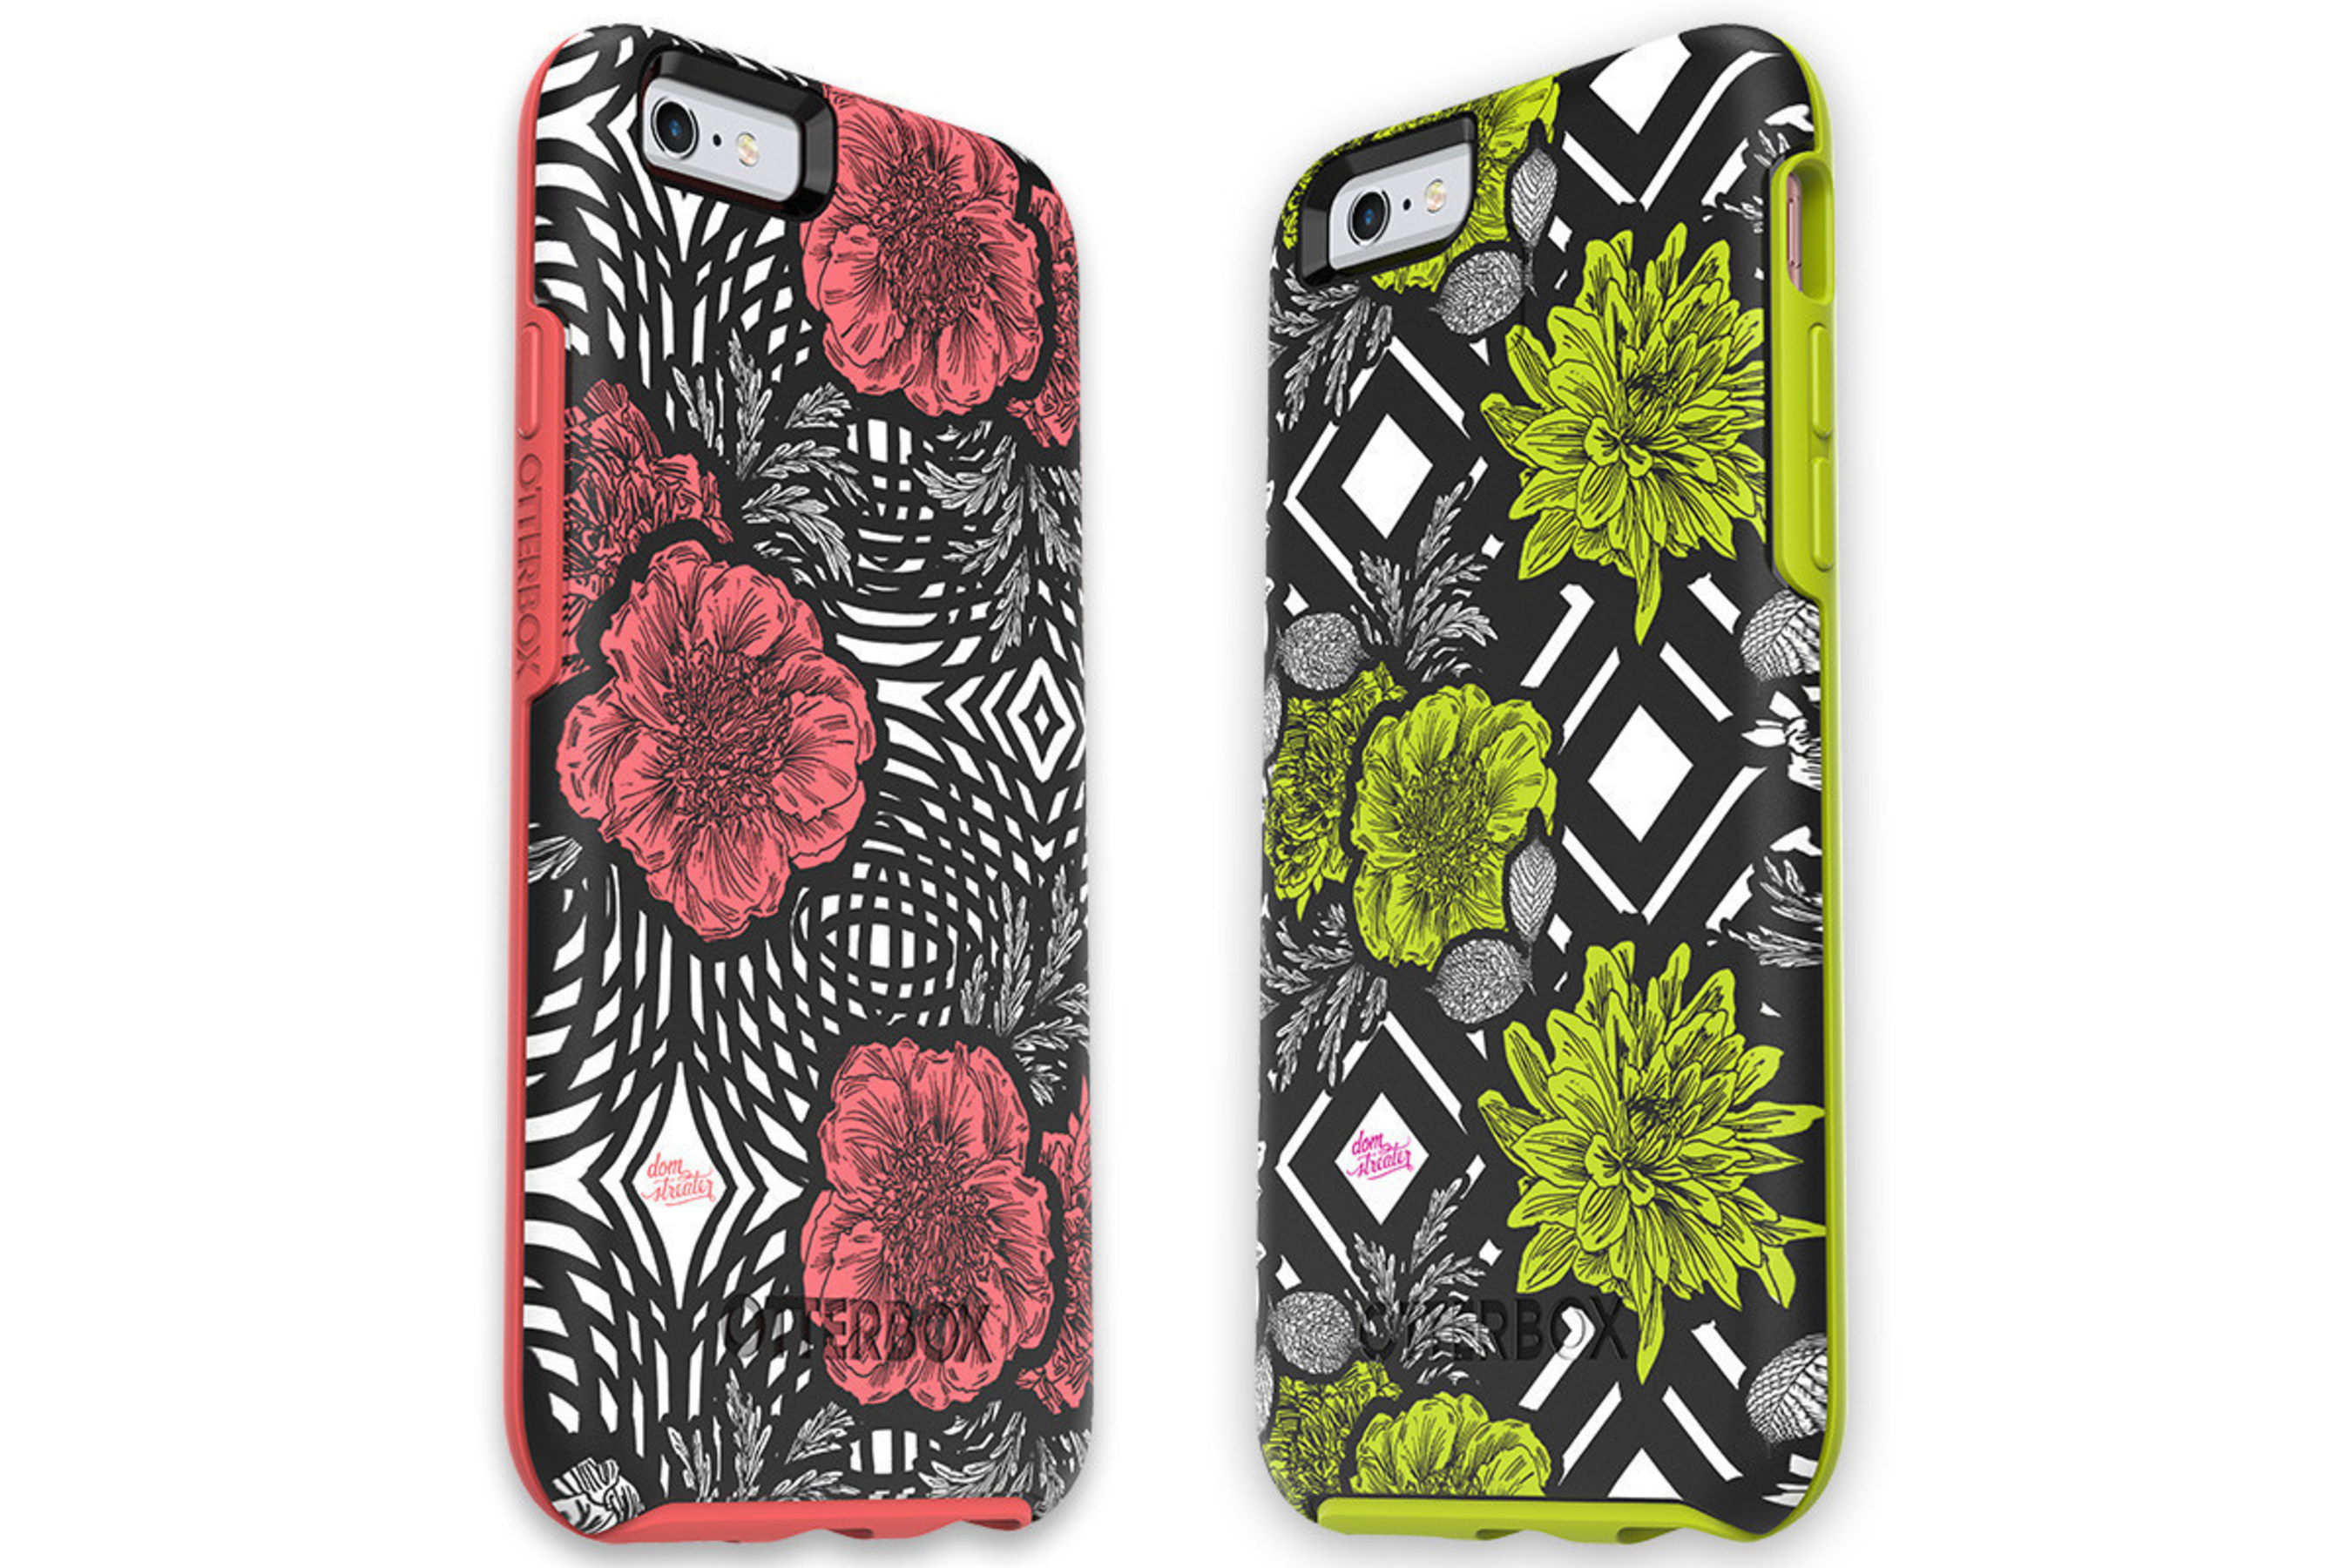 Symmetry Series cases boast a slim and sleek form for on-the-go protection. 'Green Diamond' and 'Pink Swirl' are available now.